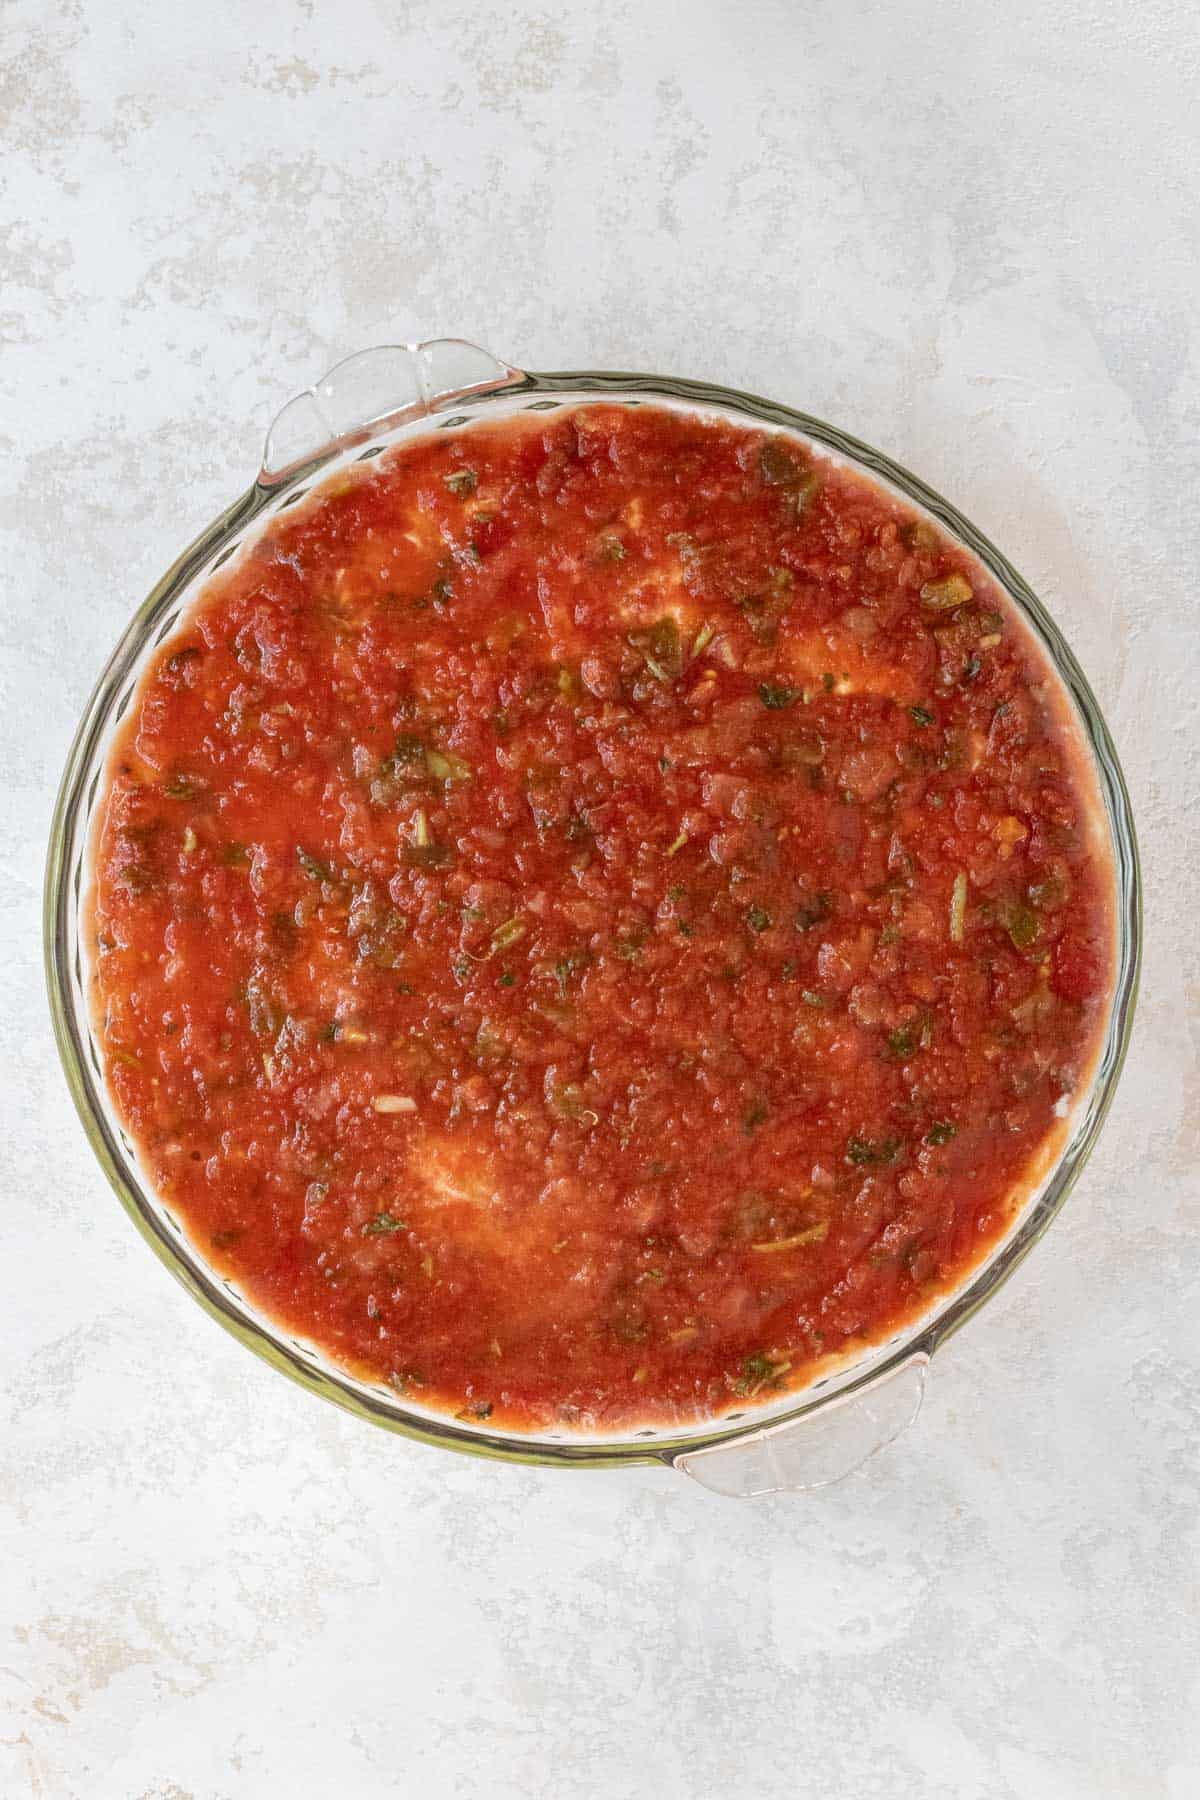 Salsa spread out over the seasoned sour cream in a large pie dish.